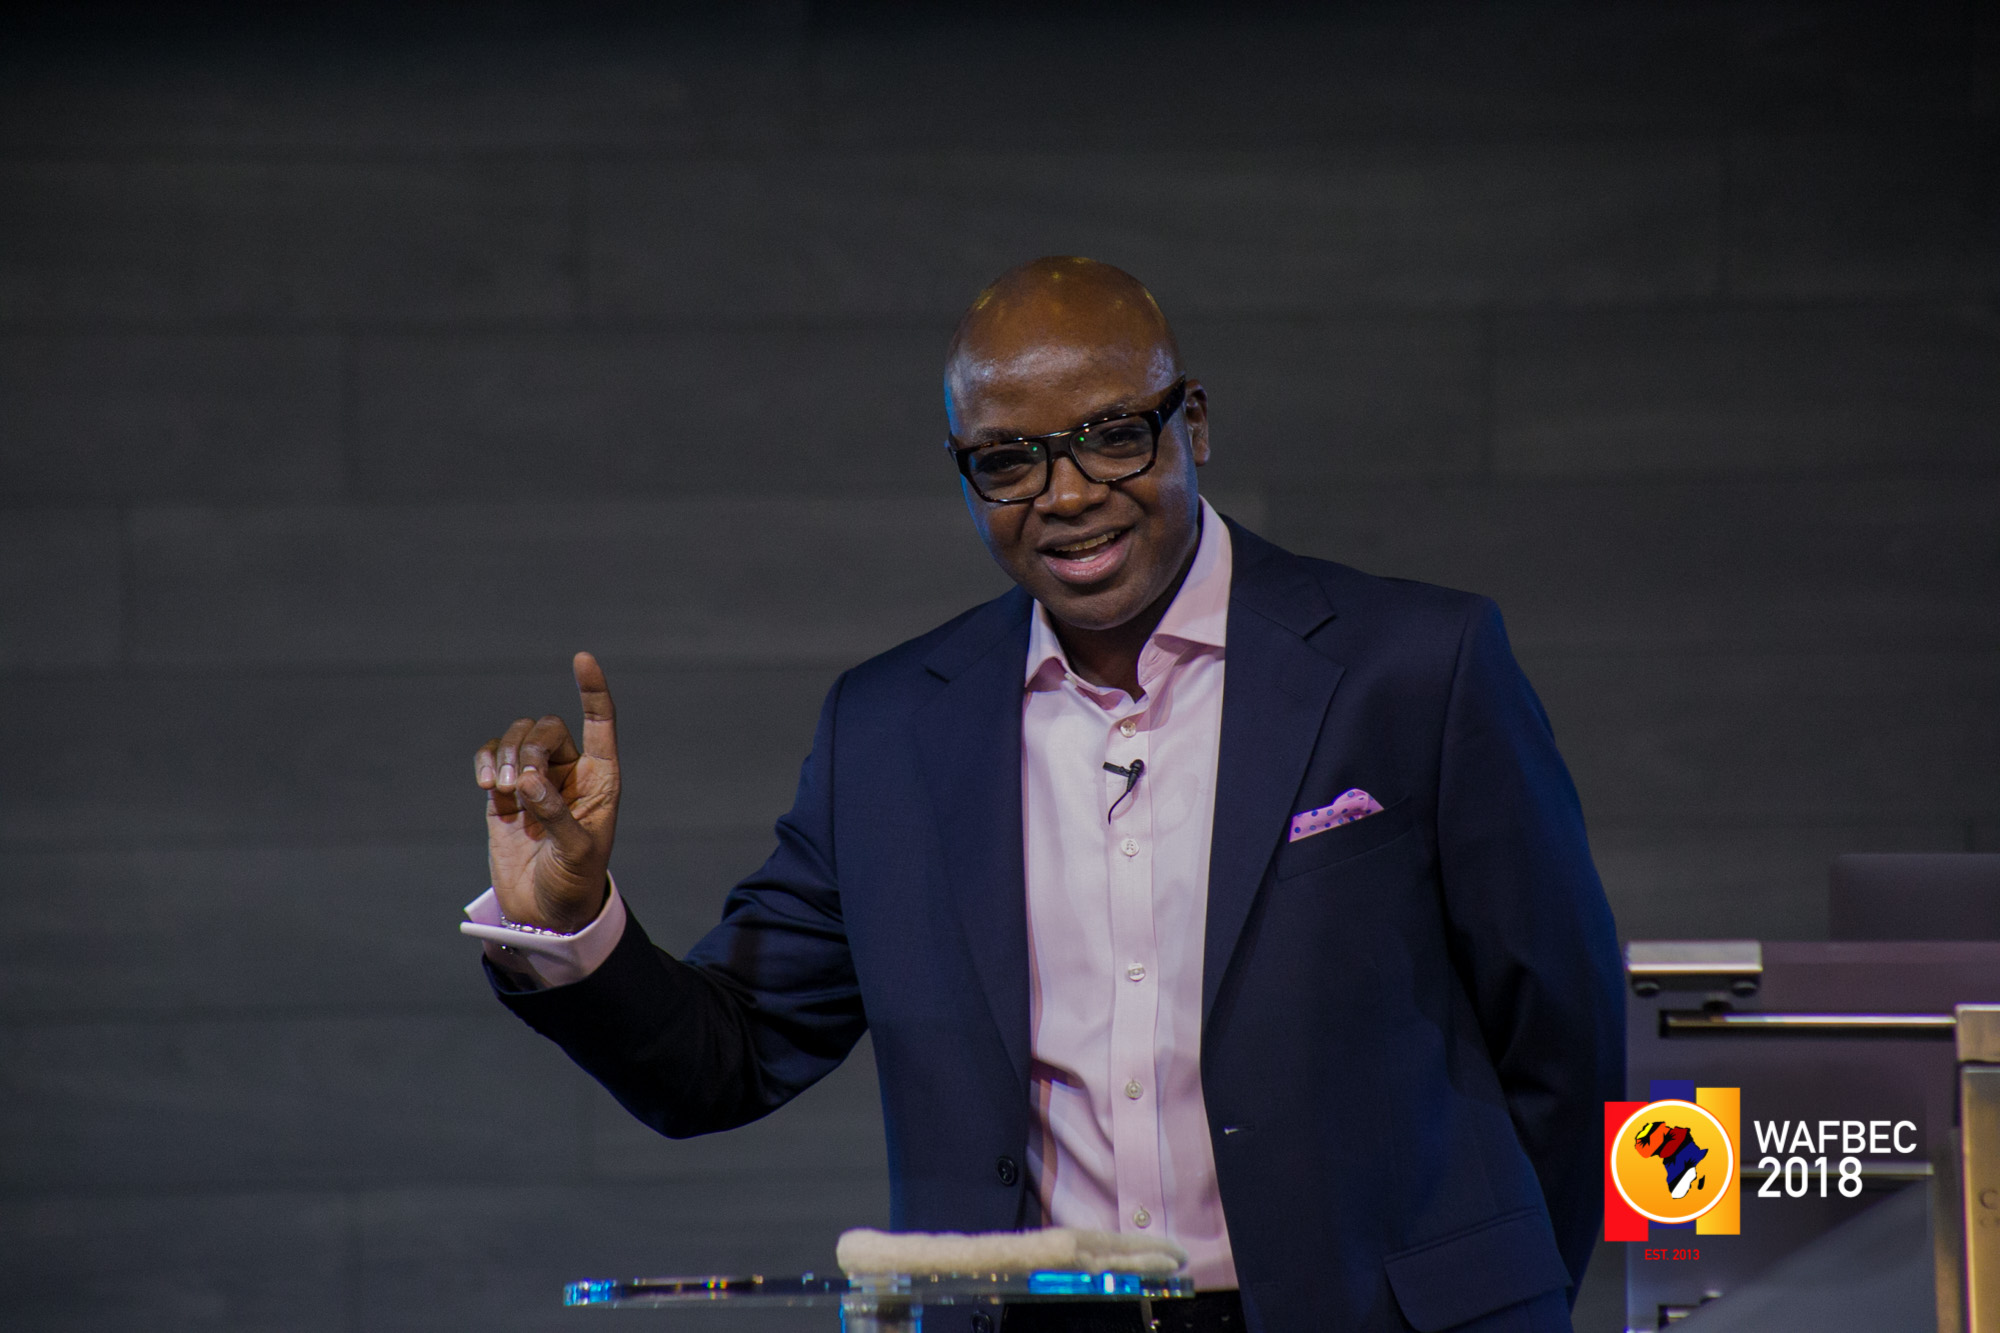 WAFBEC 2018 – Day 4 (AFTERNOON SESSION 1) with PASTOR CARLTON WILLIAMS